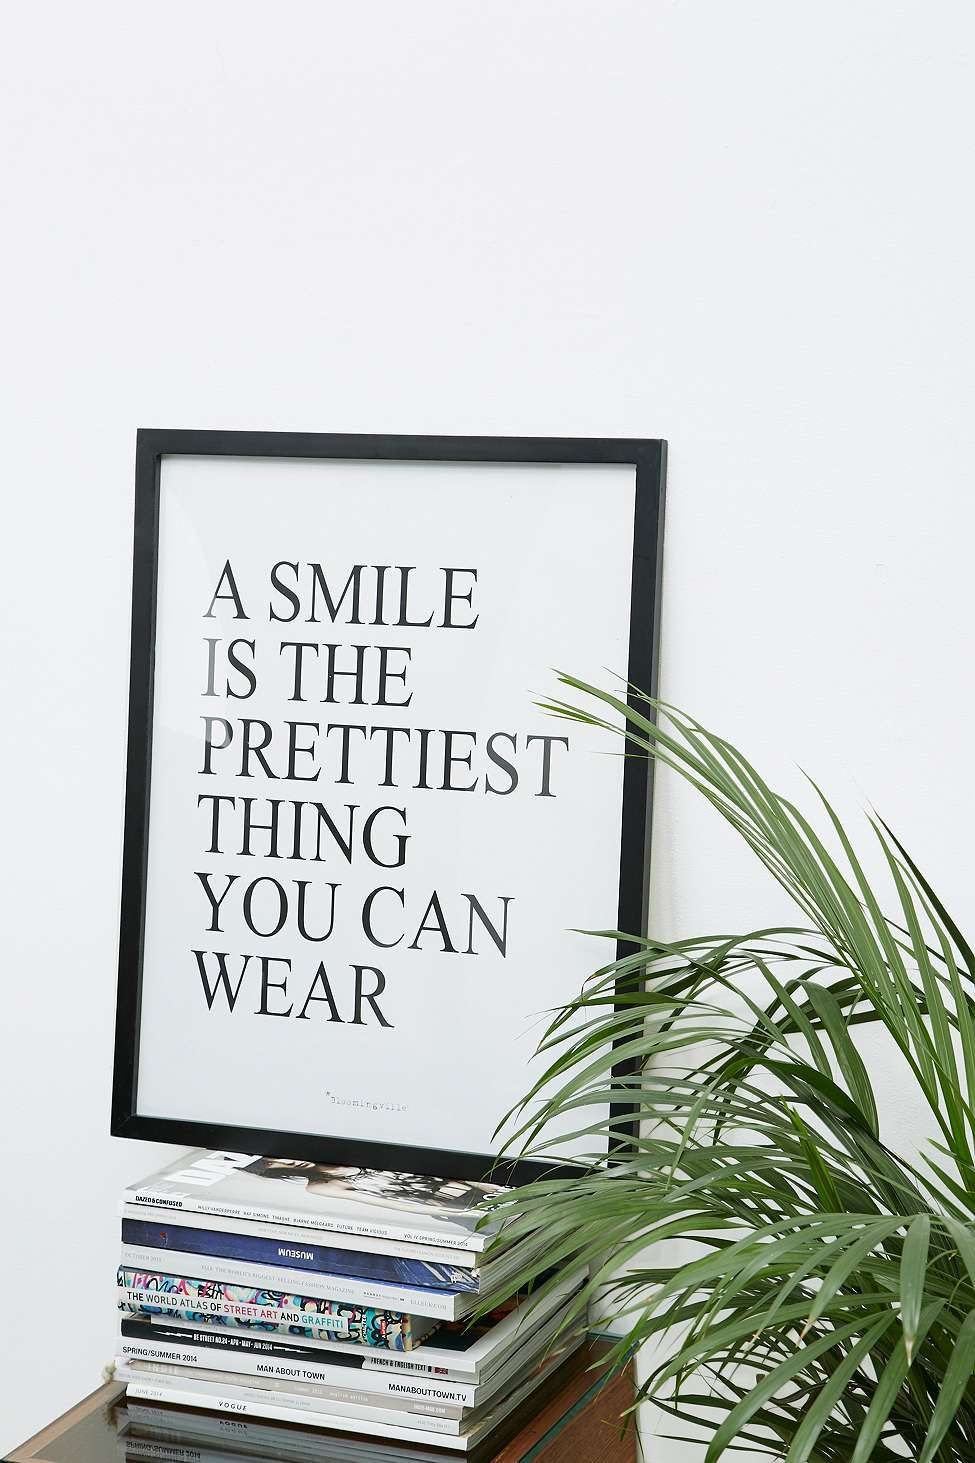 Robinet Salle De Bain Weldom ~ a smile is the prettiest wall art pinterest id e d coration